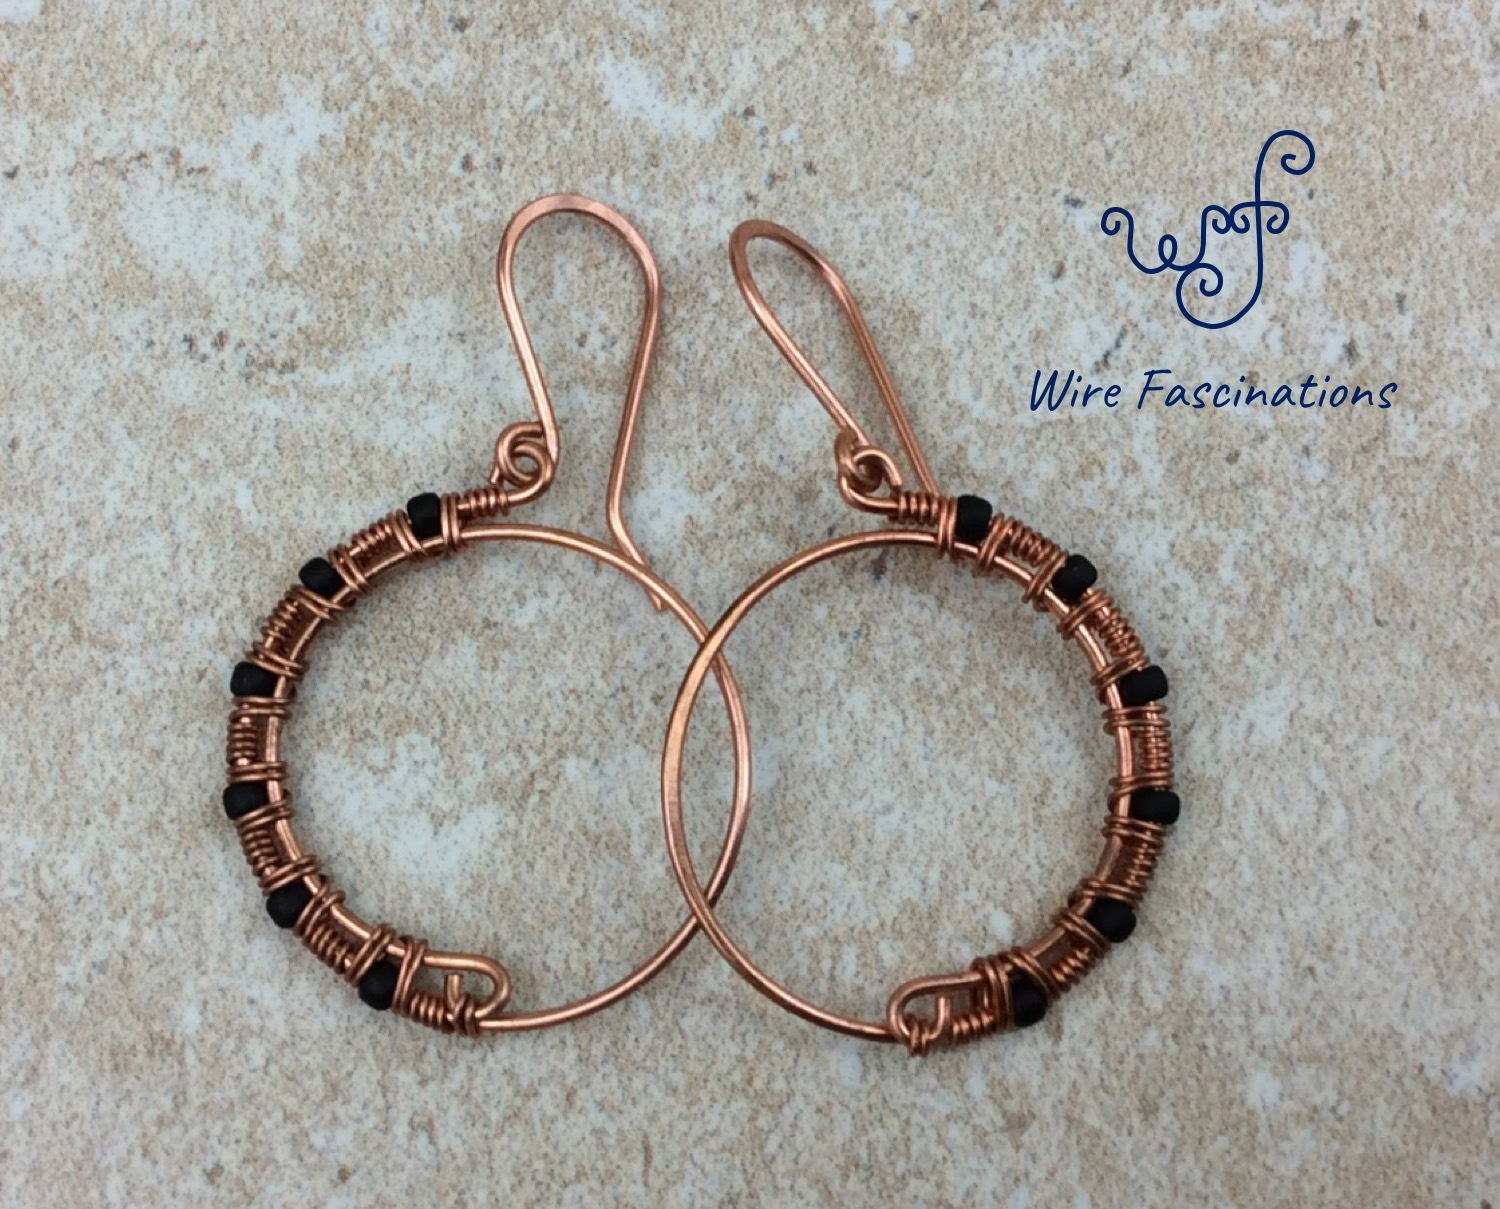 Handmade copper earrings hoops wire wrapped black beads main